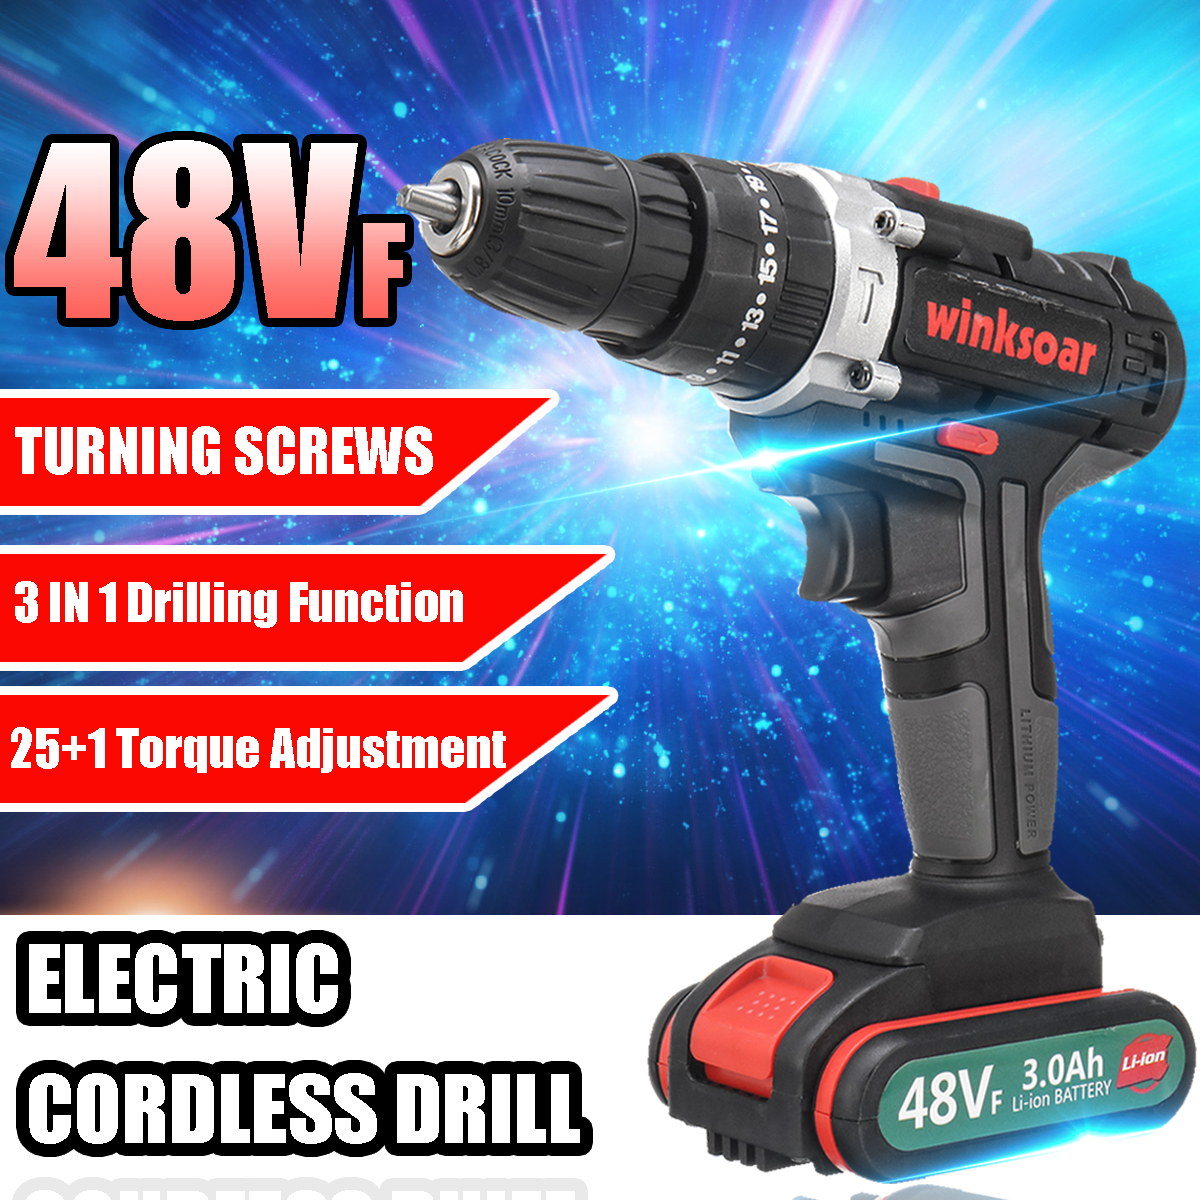 2-speed 48VF Cordless Electric Screwdriver Impact Drill 25+1 Torque Rechargeable Battery Electric Drill Parafusadeira A Bateria